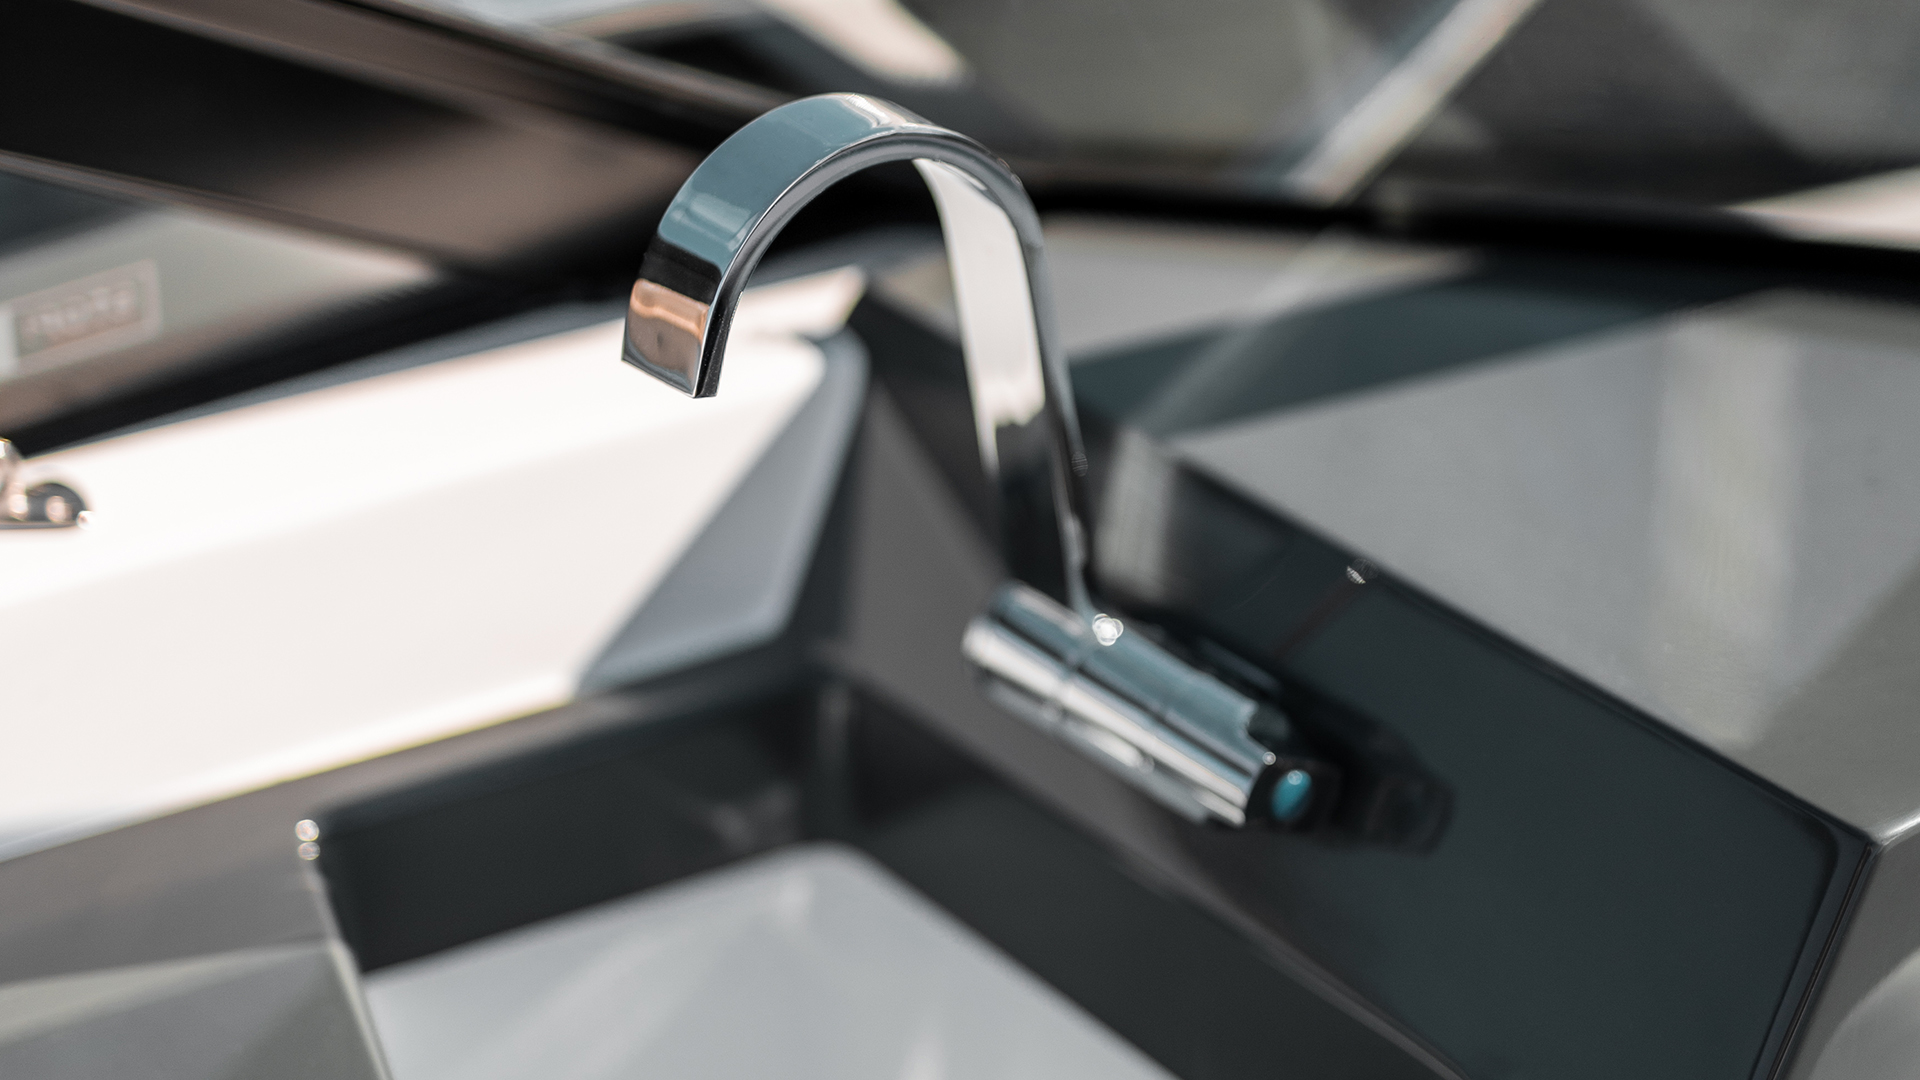 Noblesse 720 sink and tap